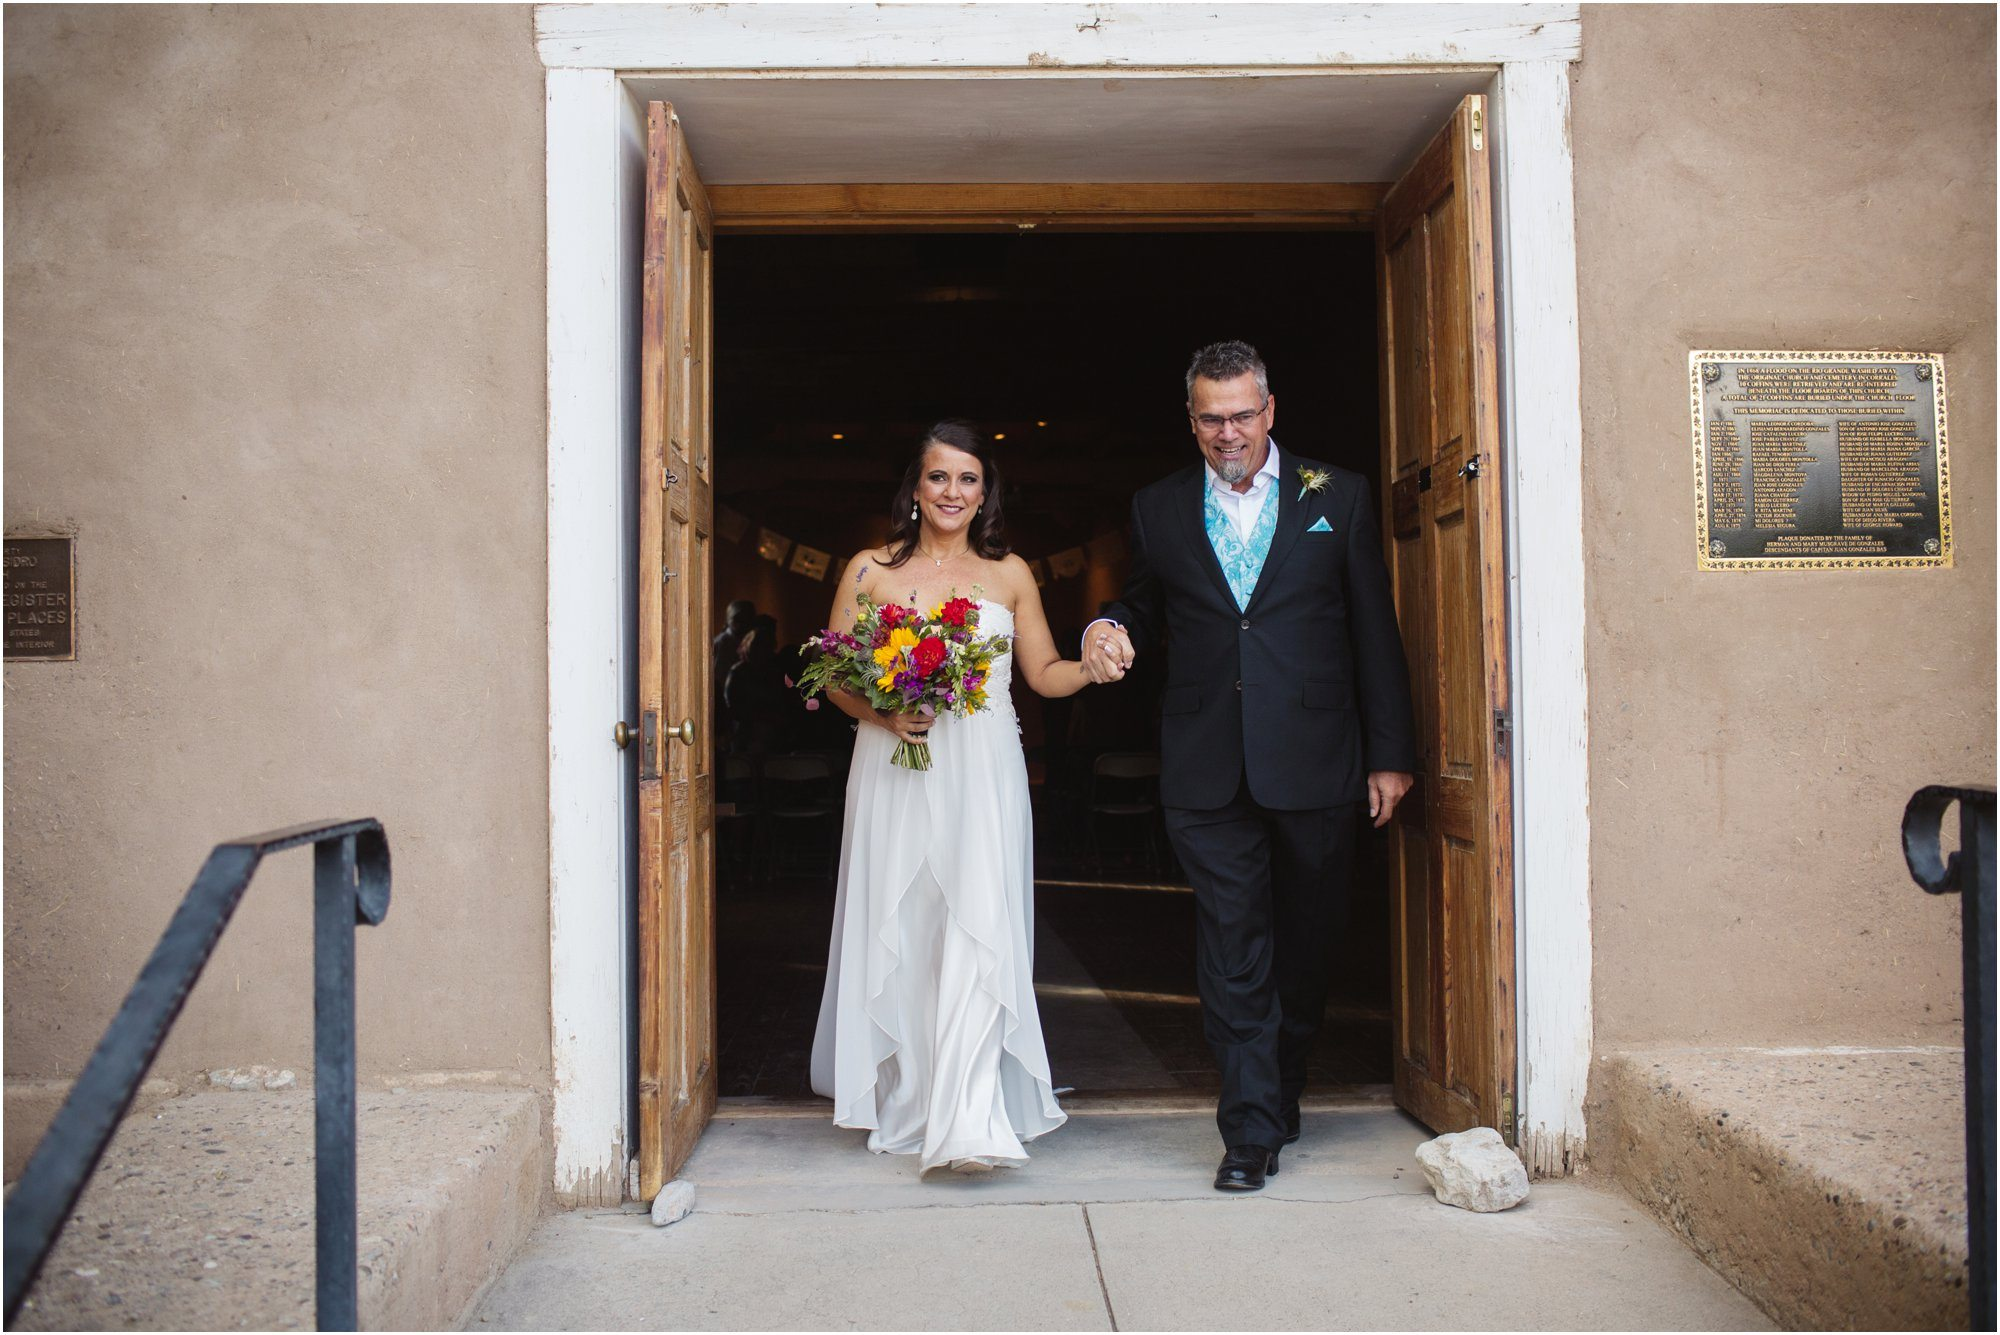 050BlueRosePhotography_ Albuquerque wedding photographers